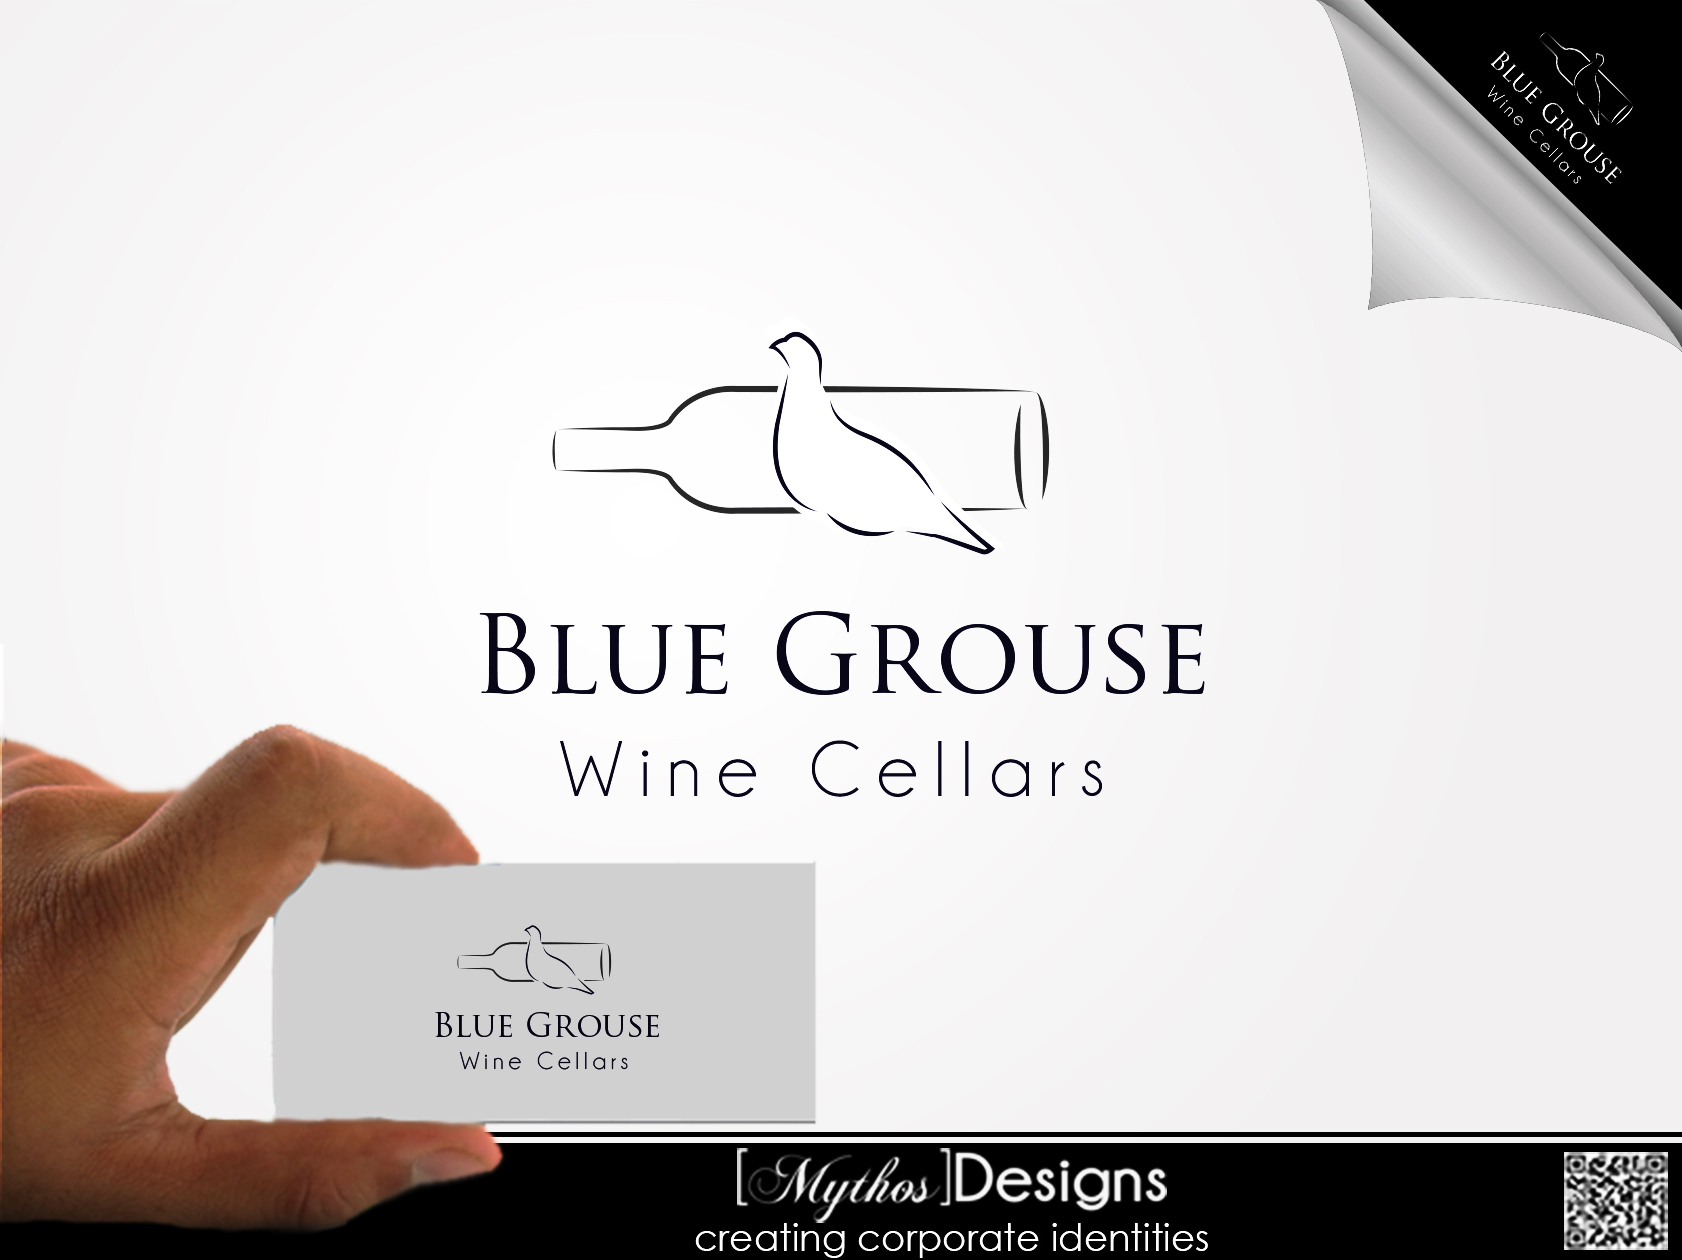 Logo Design by Mythos Designs - Entry No. 36 in the Logo Design Contest Creative Logo Design for Blue Grouse Wine Cellars.